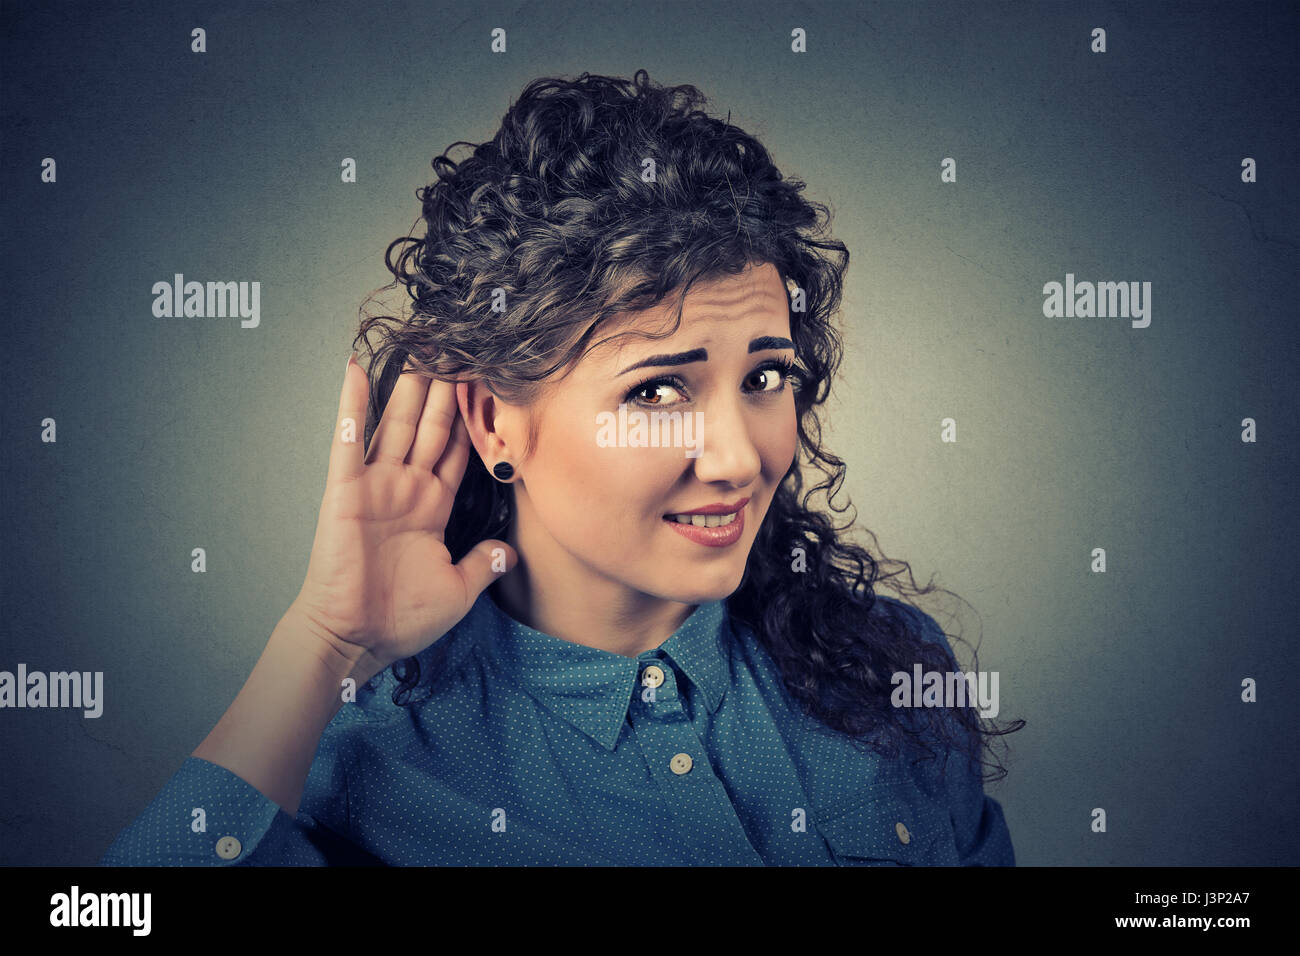 Closeup portrait of unhappy hard of hearing woman placing hand on ear asking someone to speak up or listening to - Stock Image